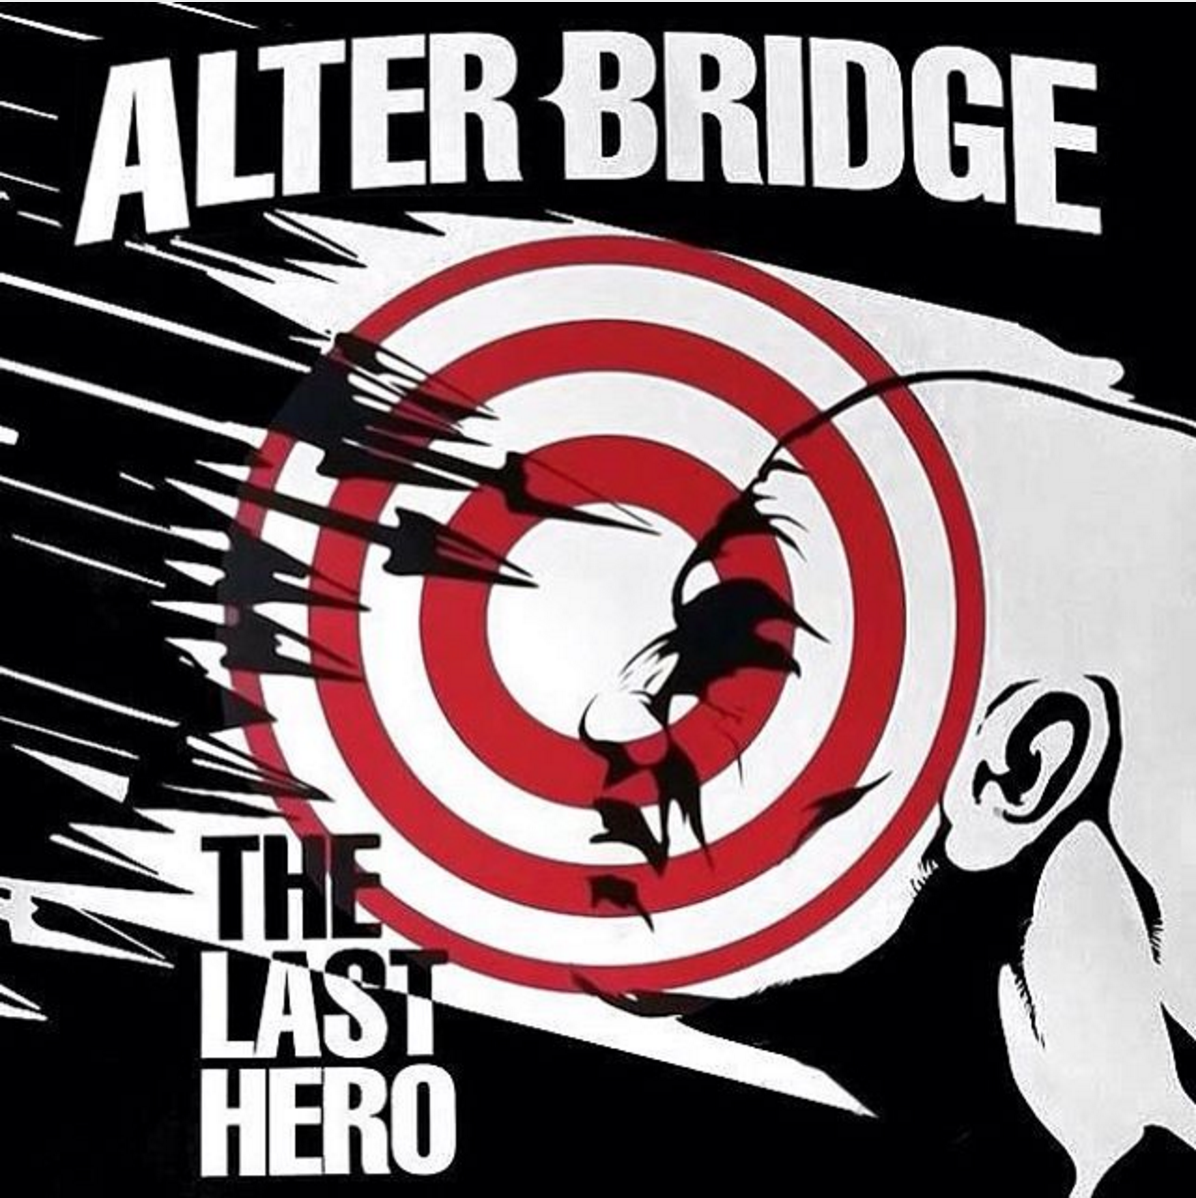 Alter Bridge - The Last Hero - Album Cover